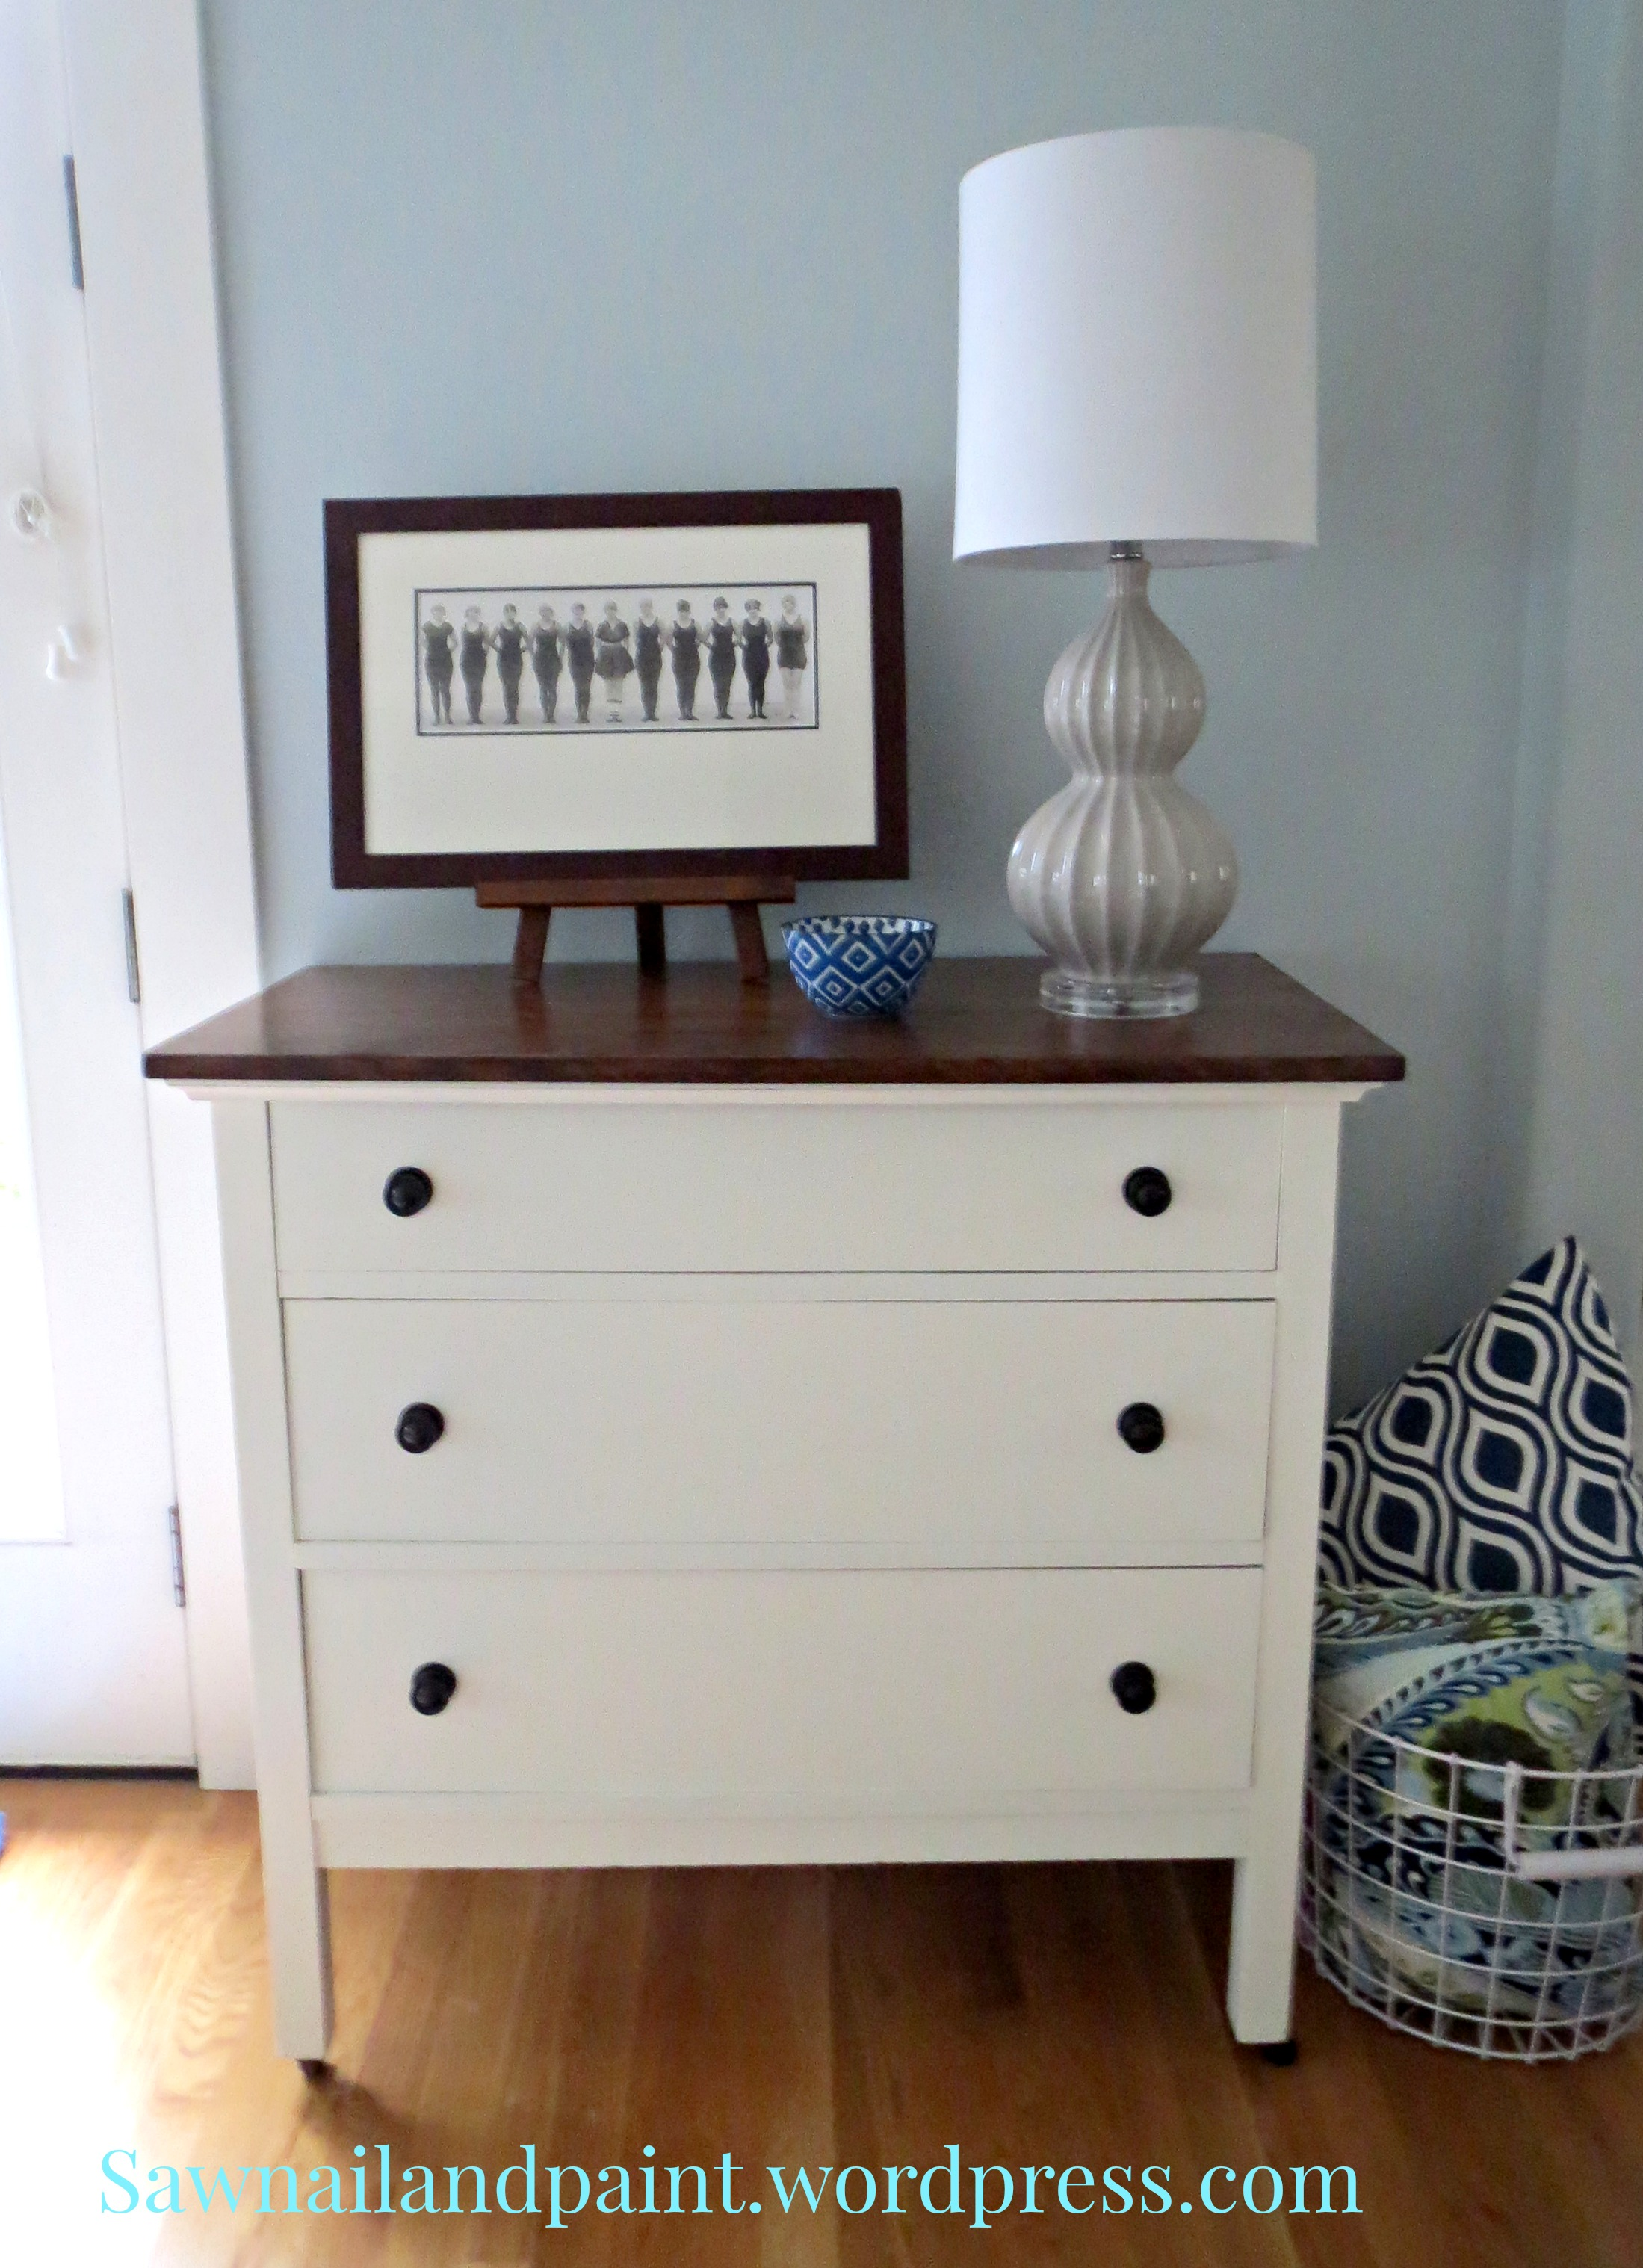 Wonderful White and java dresser - Saw Nail and Paint DZ07